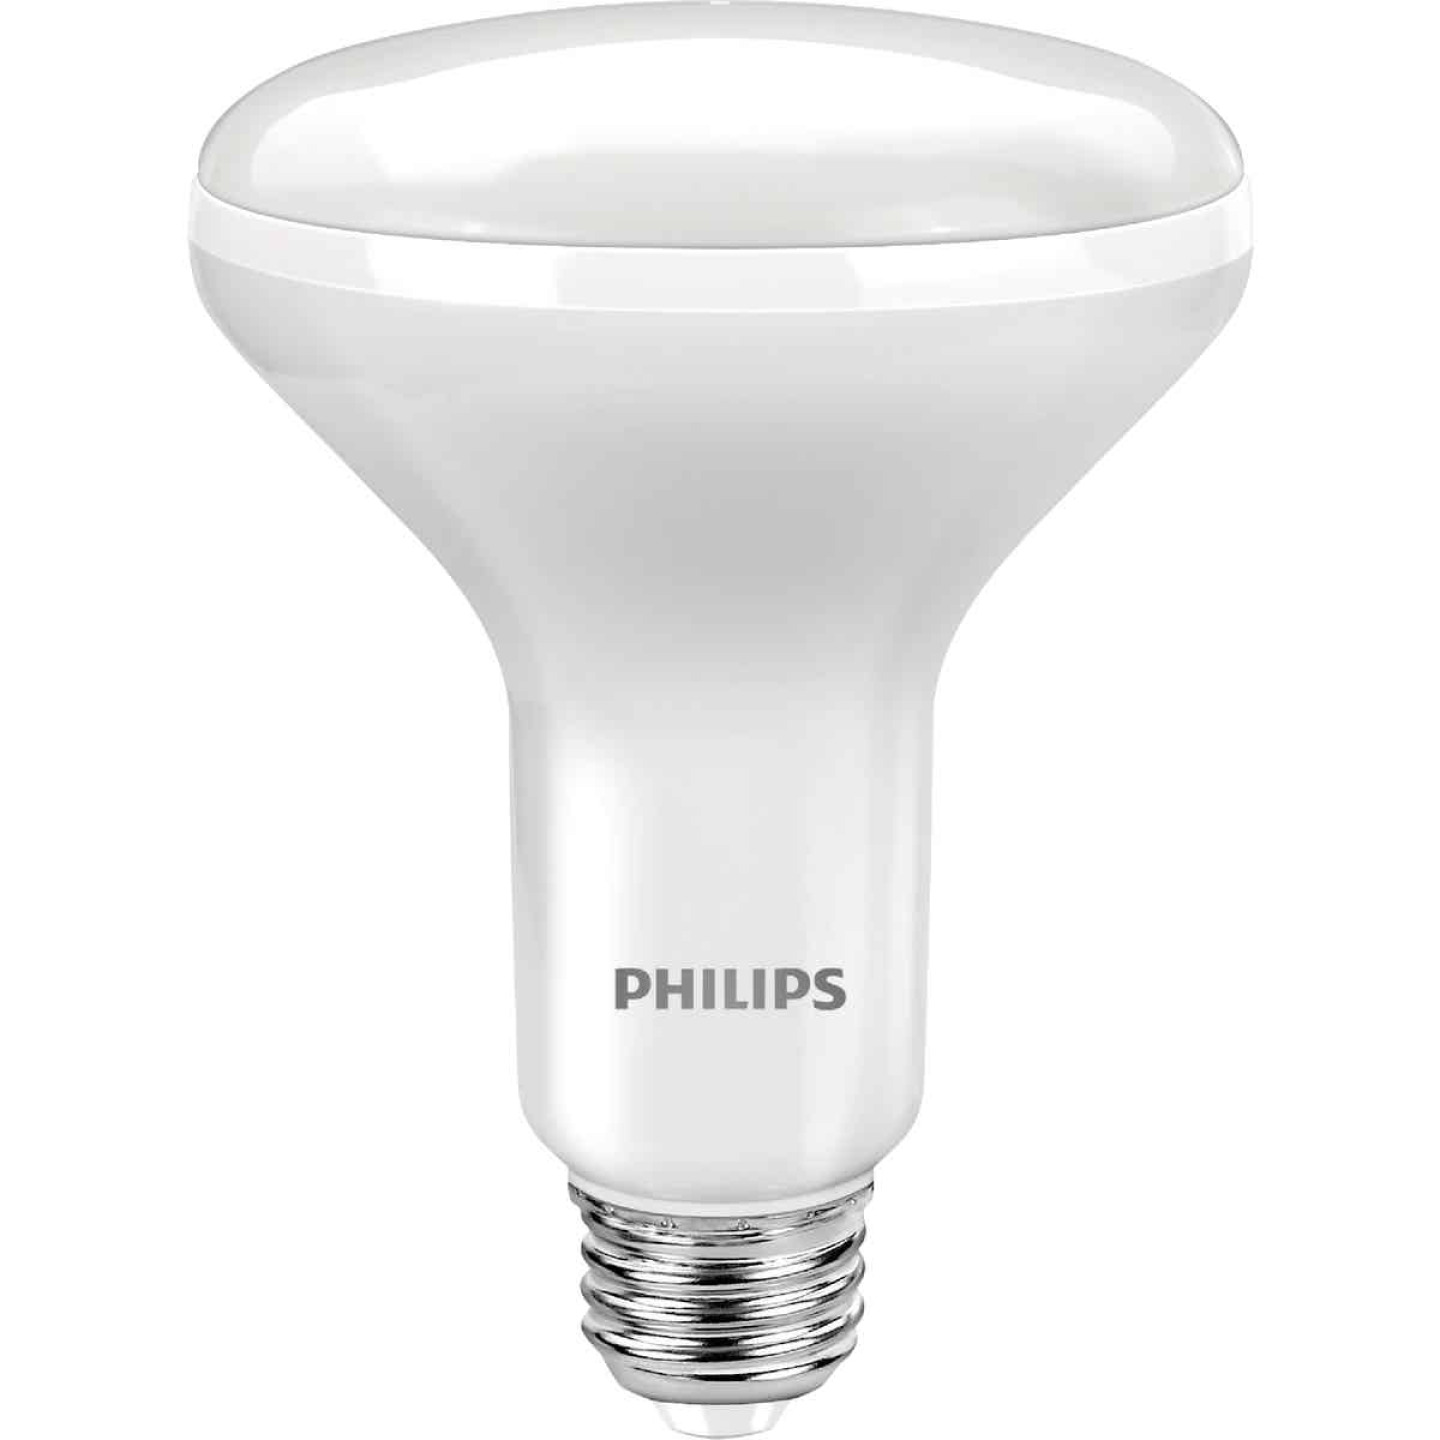 Philips 65W Equivalent Soft White BR30 Medium Dimmable LED Floodlight Light Bulb (2-Pack) Image 3